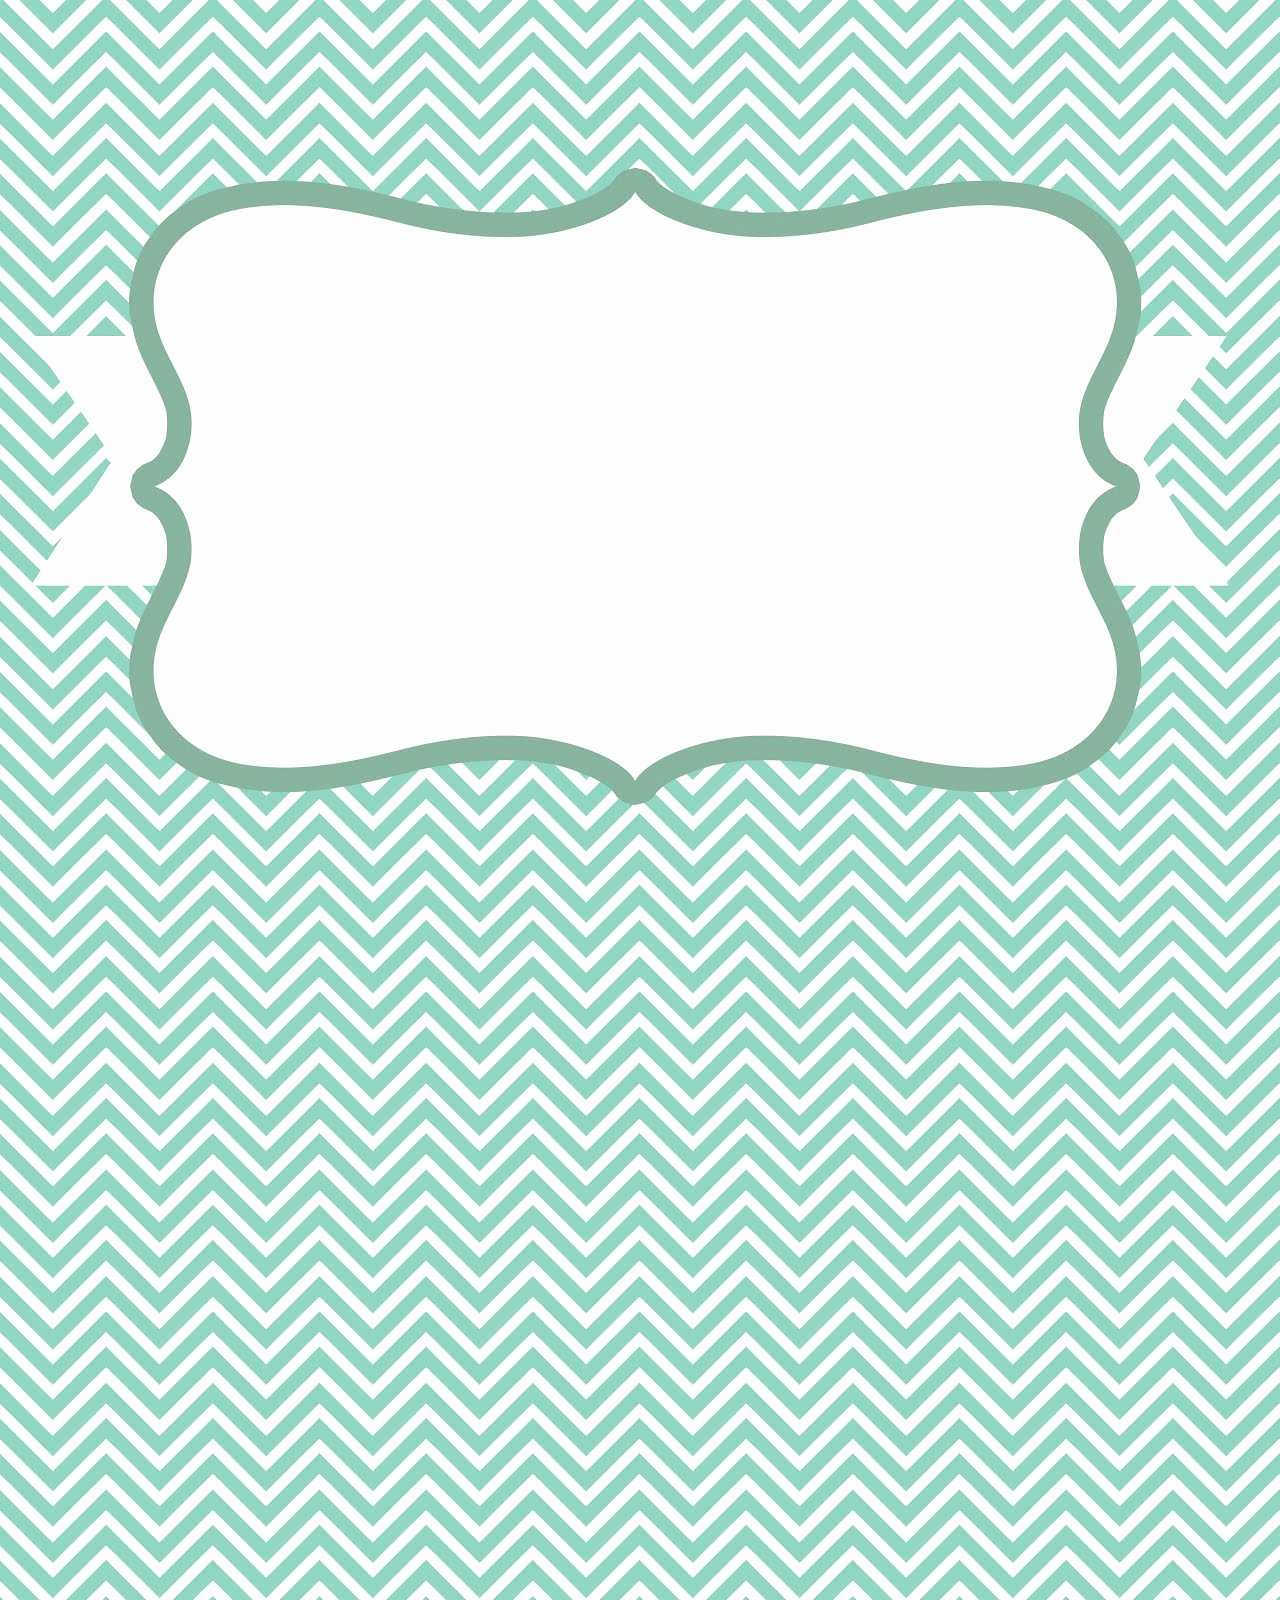 8 Best Of Blank Chevron Binder Cover Printables